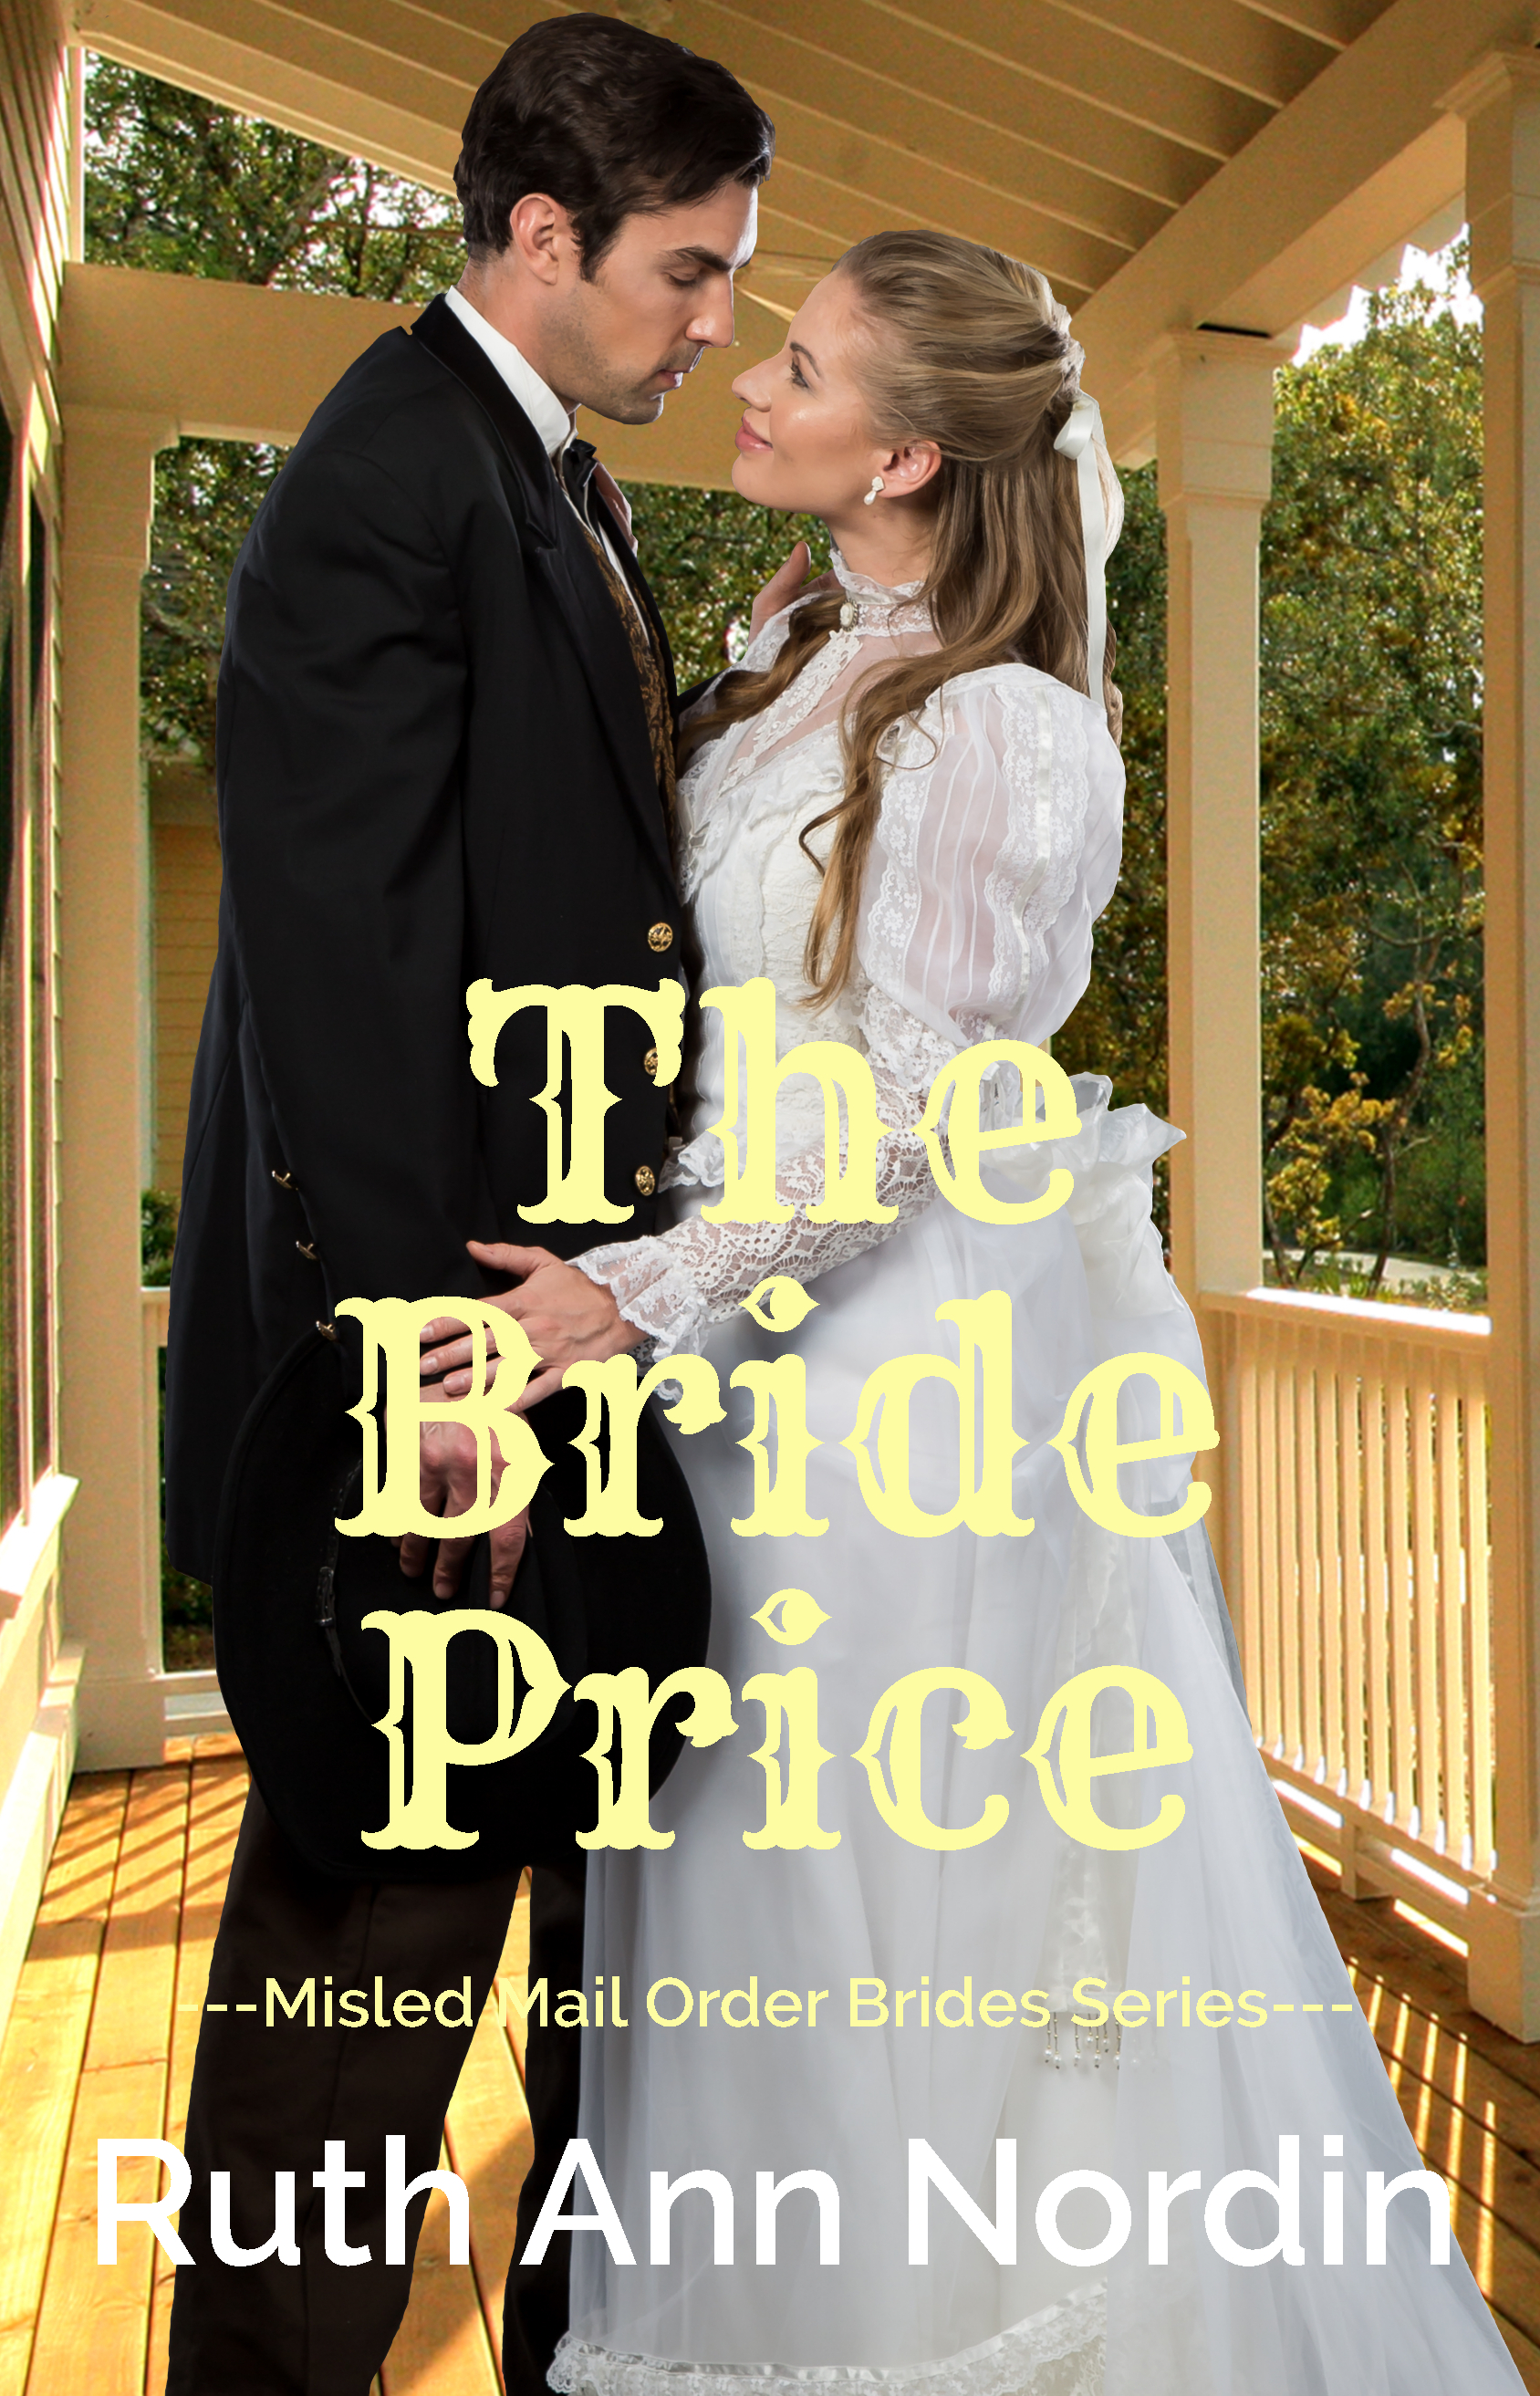 The Bride Price (sst-cccxxvi)